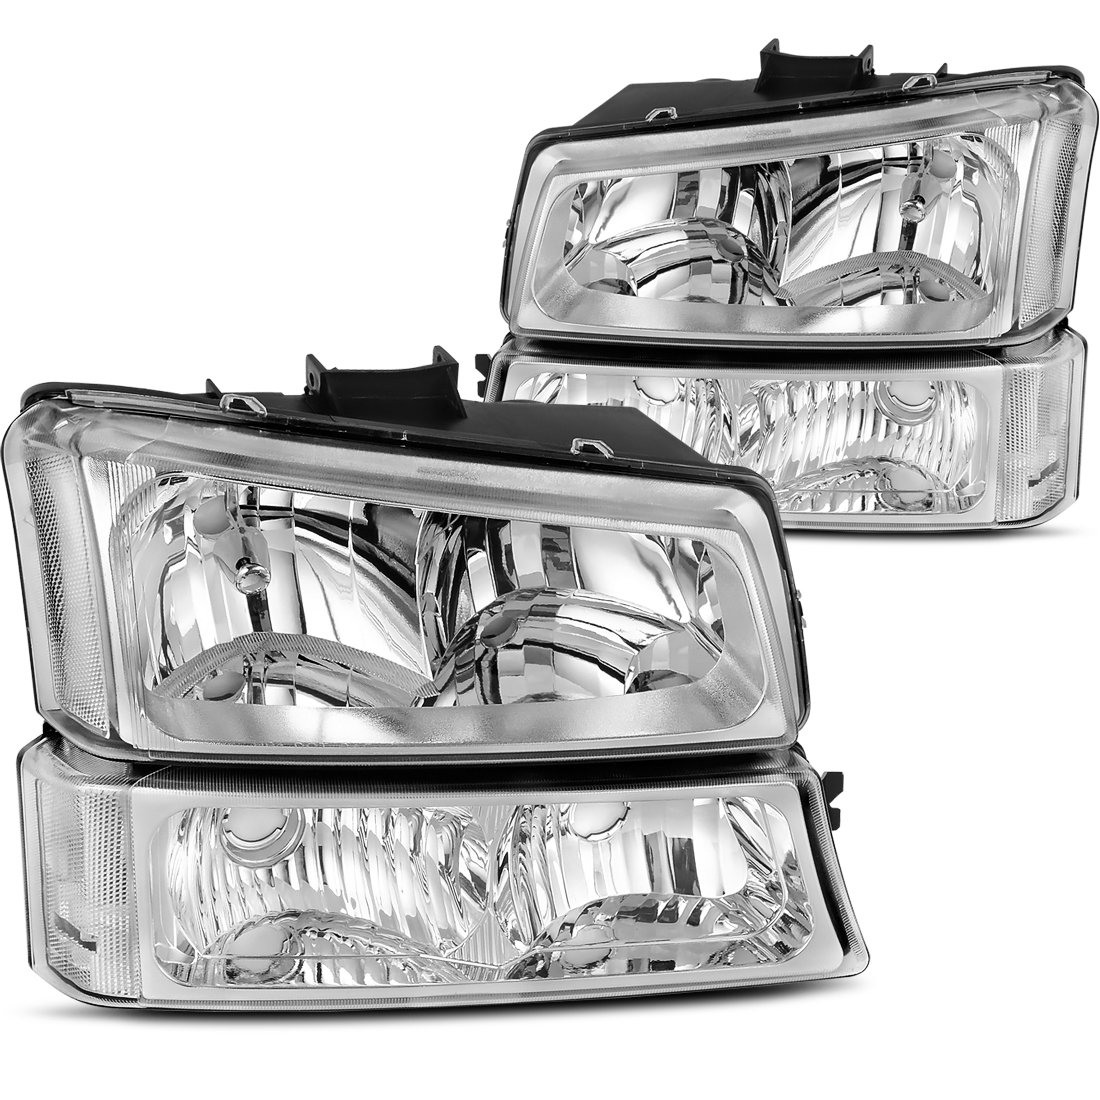 Headlight Assembly Kit For 03 04 05 06 Chevy Avalanche Luv Wiring Tail Light 07 Chevrolet Silverado 1500hd 2500hd Headlampchrome Housing